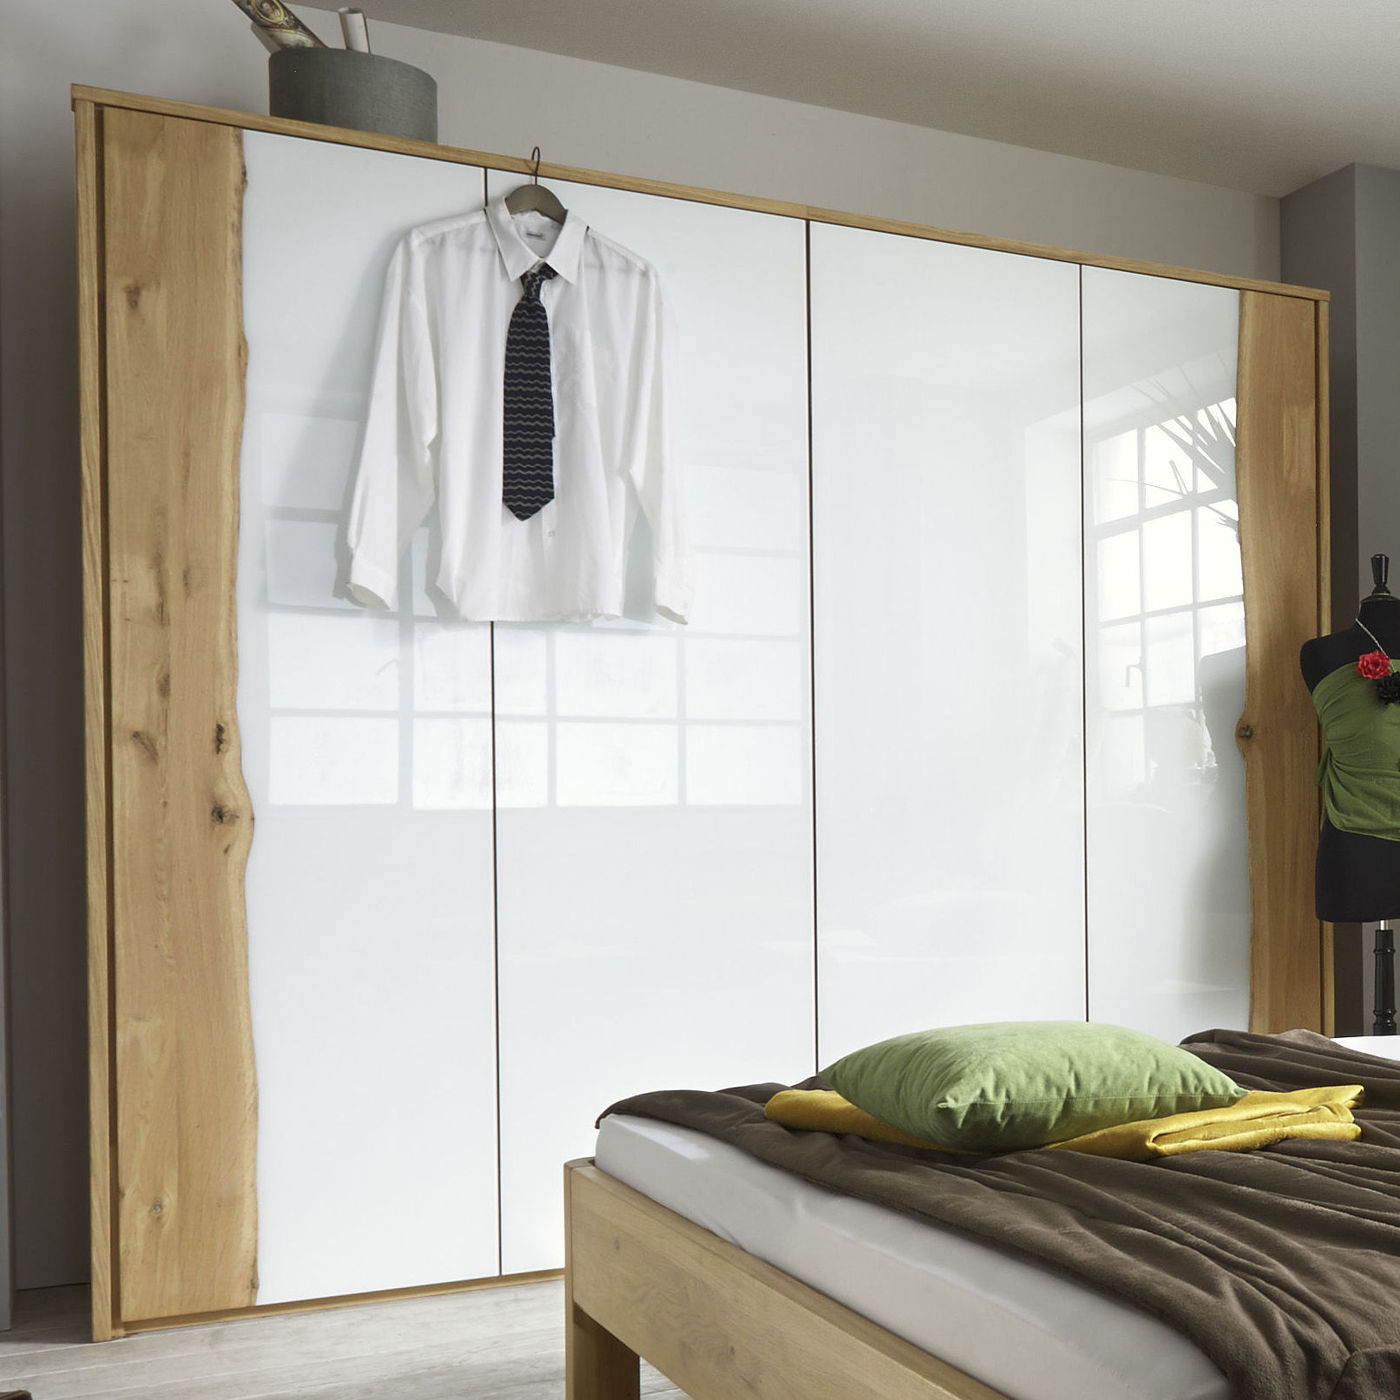 rustikaler kleiderschrank mit glas wildeiche baumkante imst. Black Bedroom Furniture Sets. Home Design Ideas